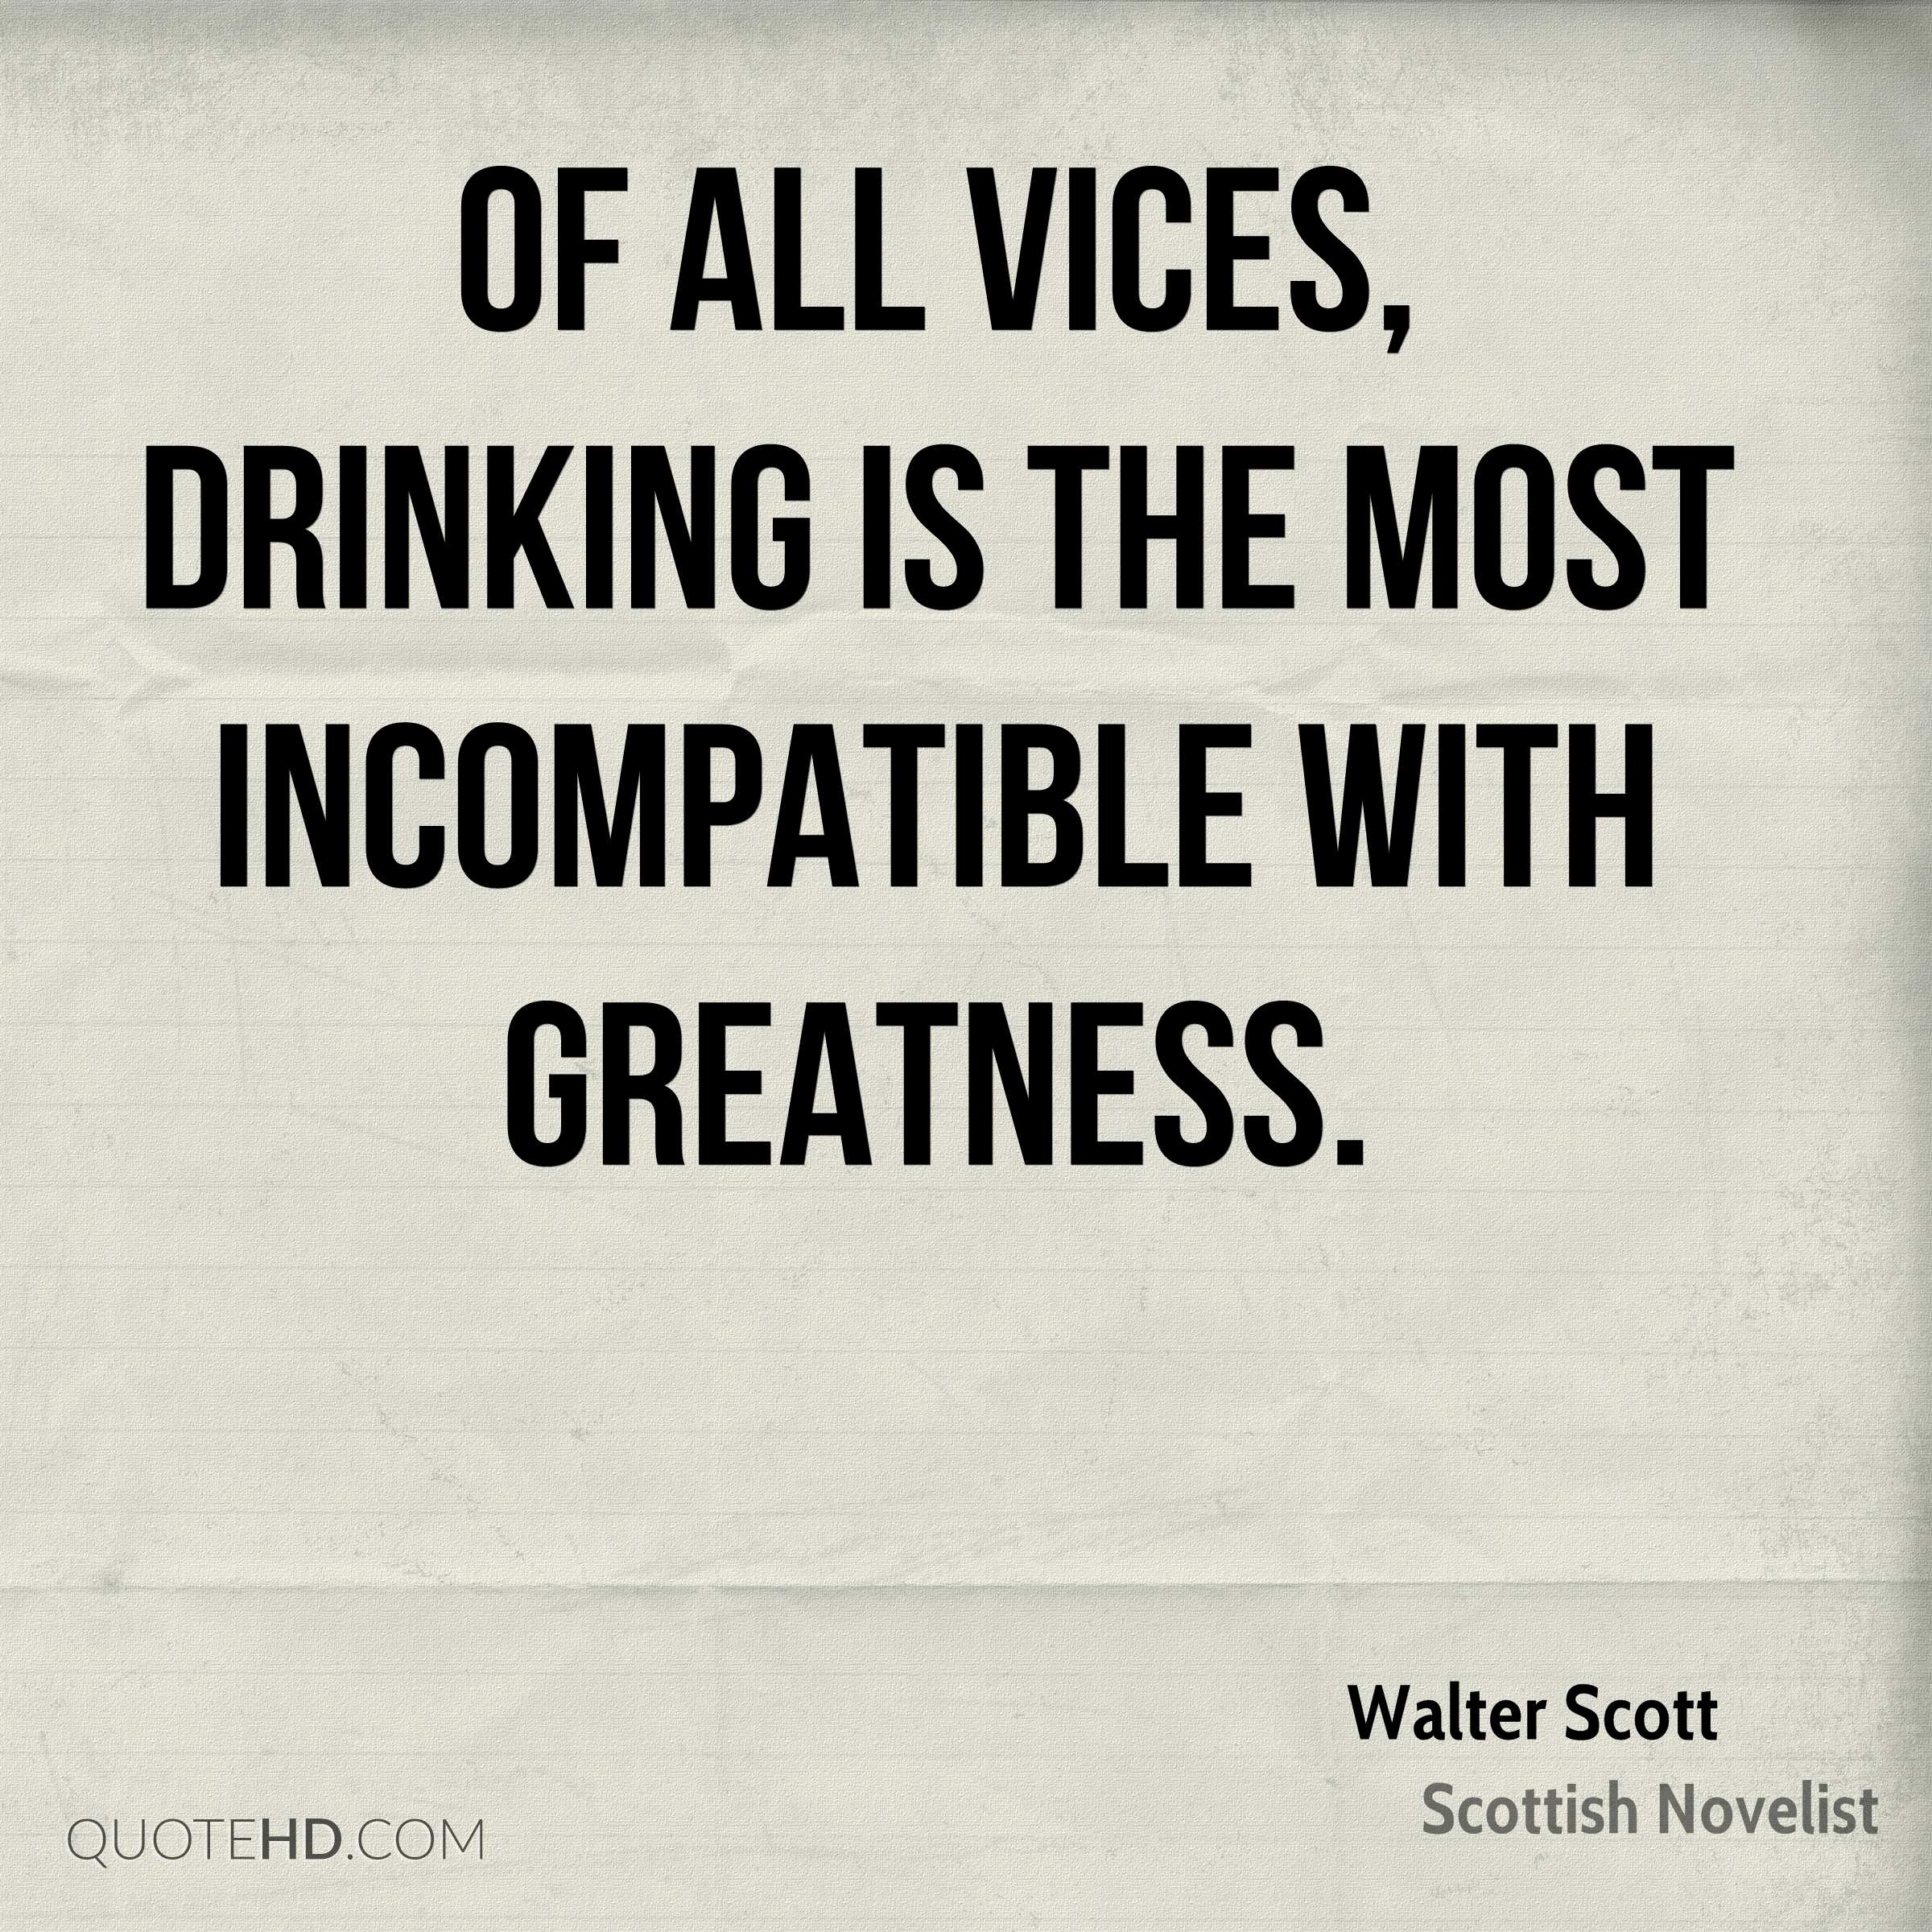 Of all vices, drinking is the most incompatible with greatness.